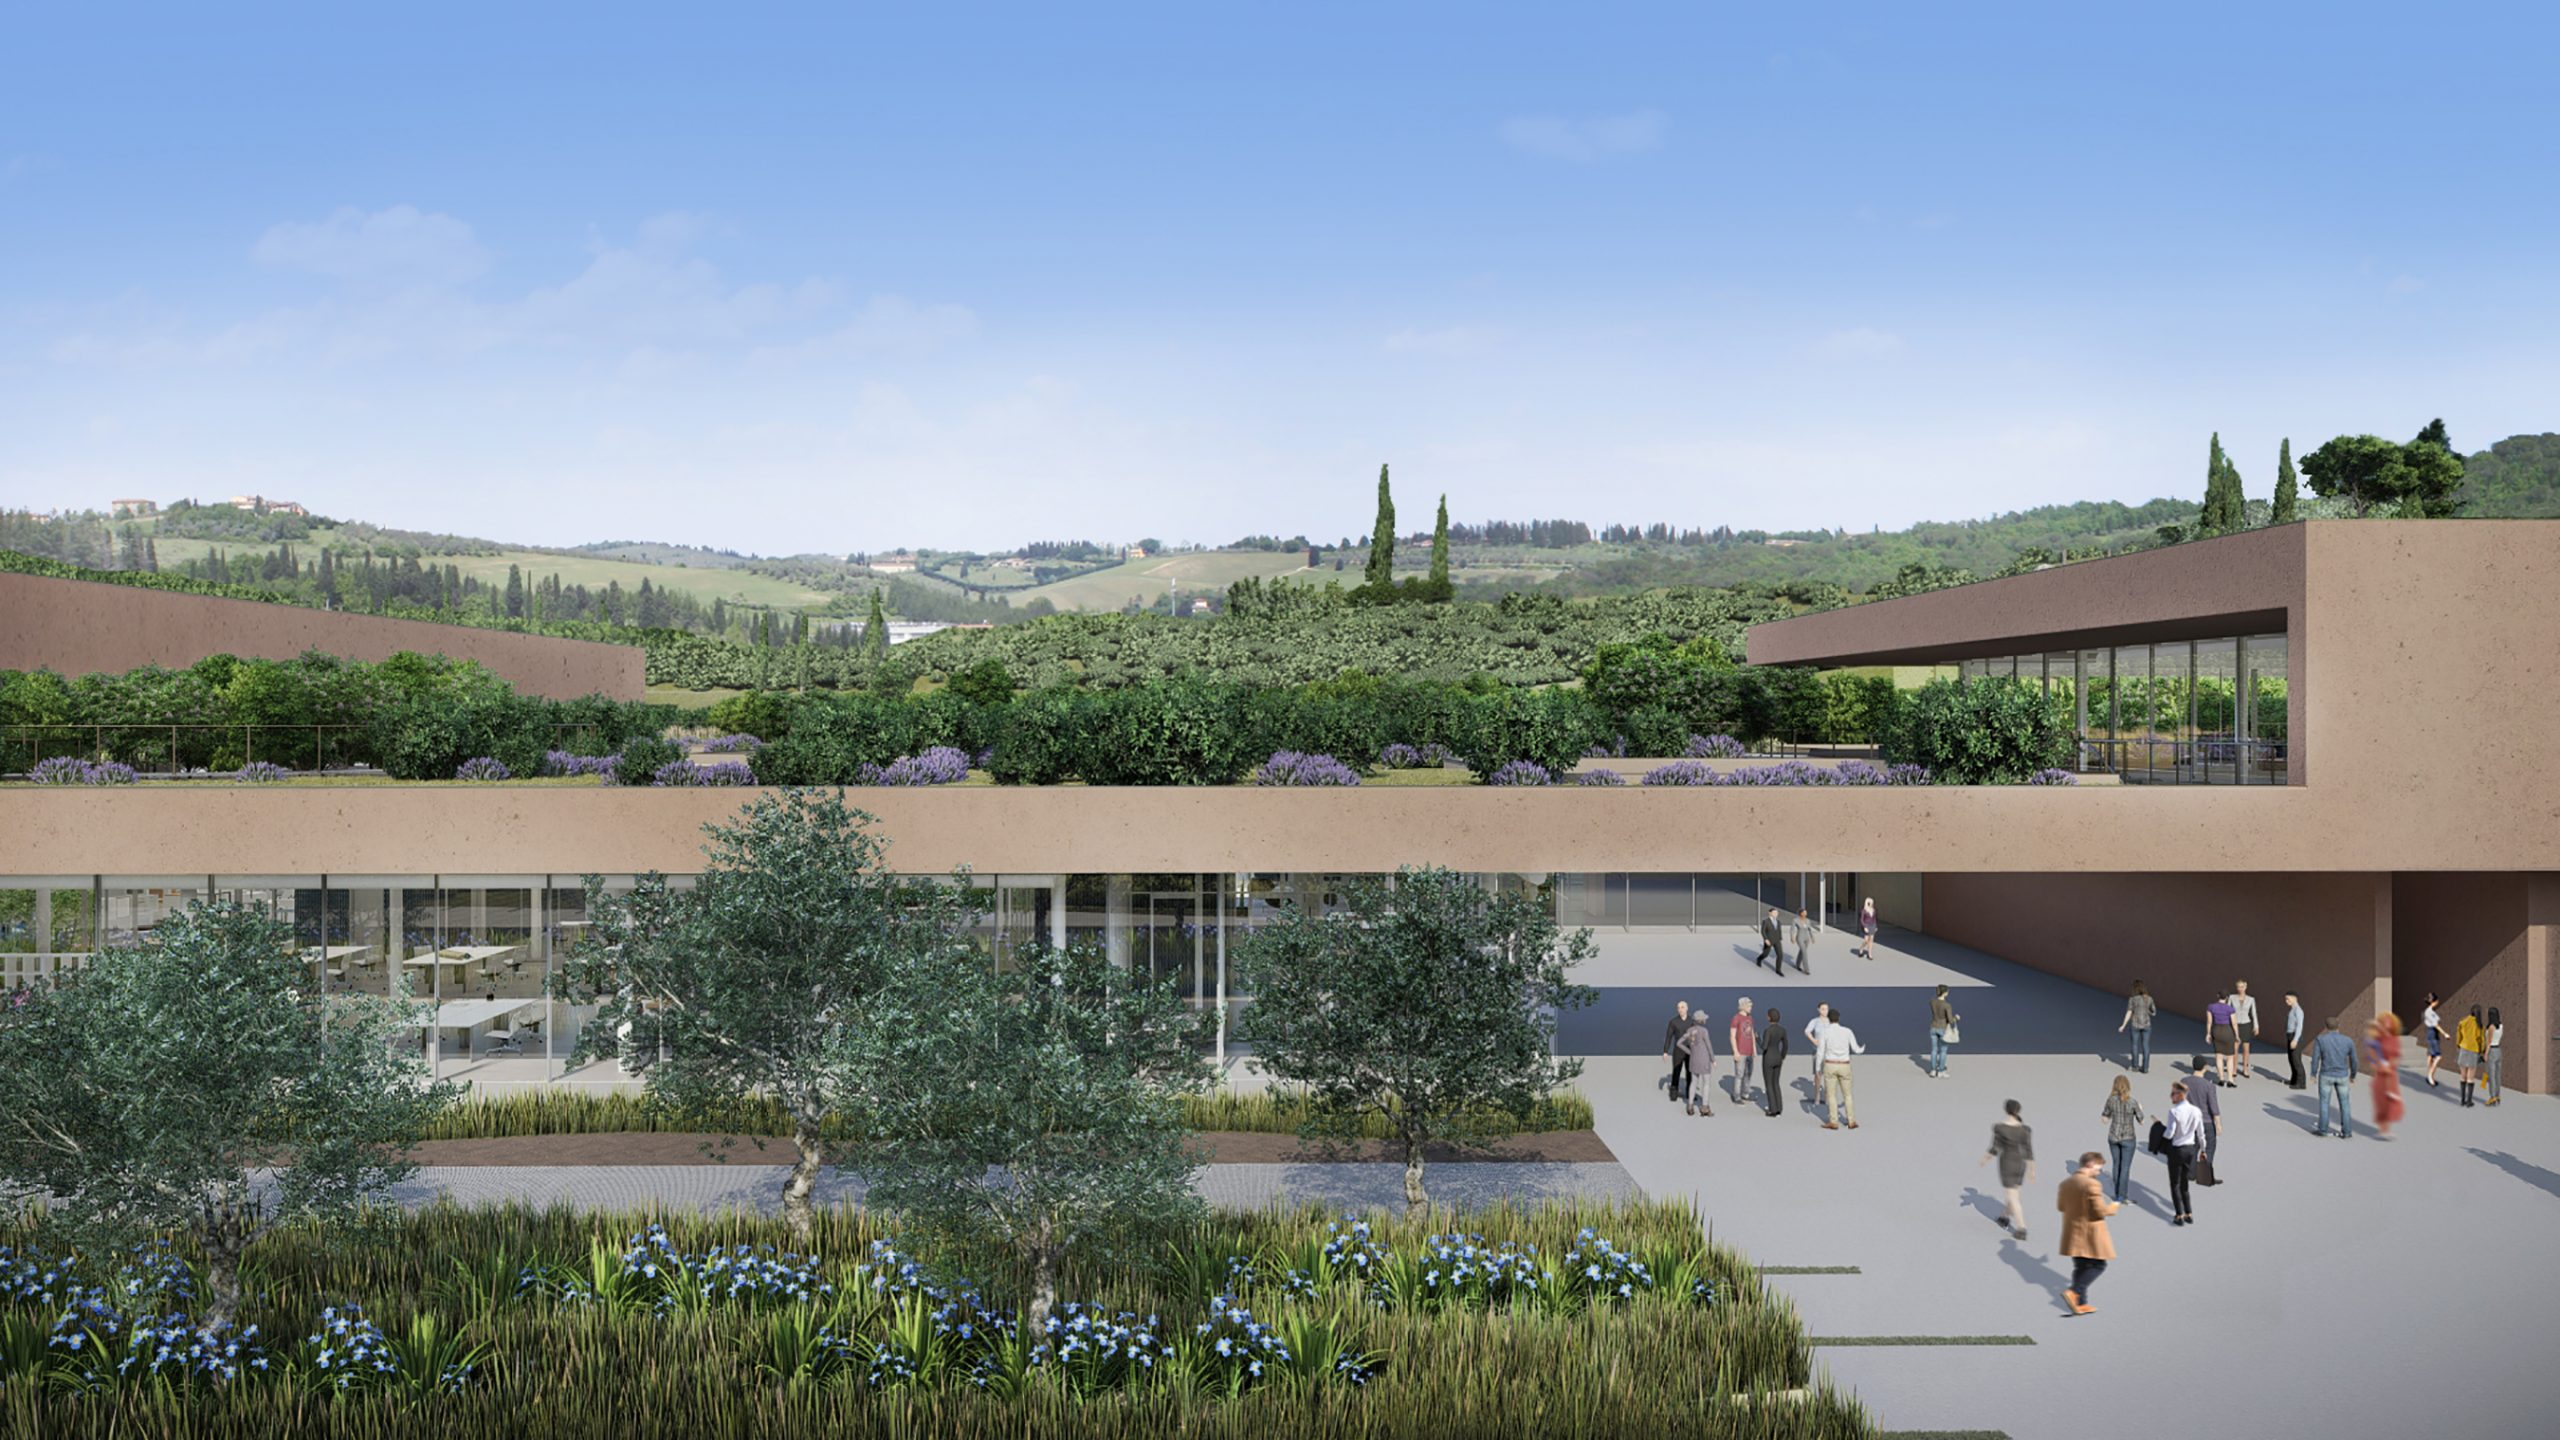 Fendi Lays Foundation Stone For Sustainable Factory